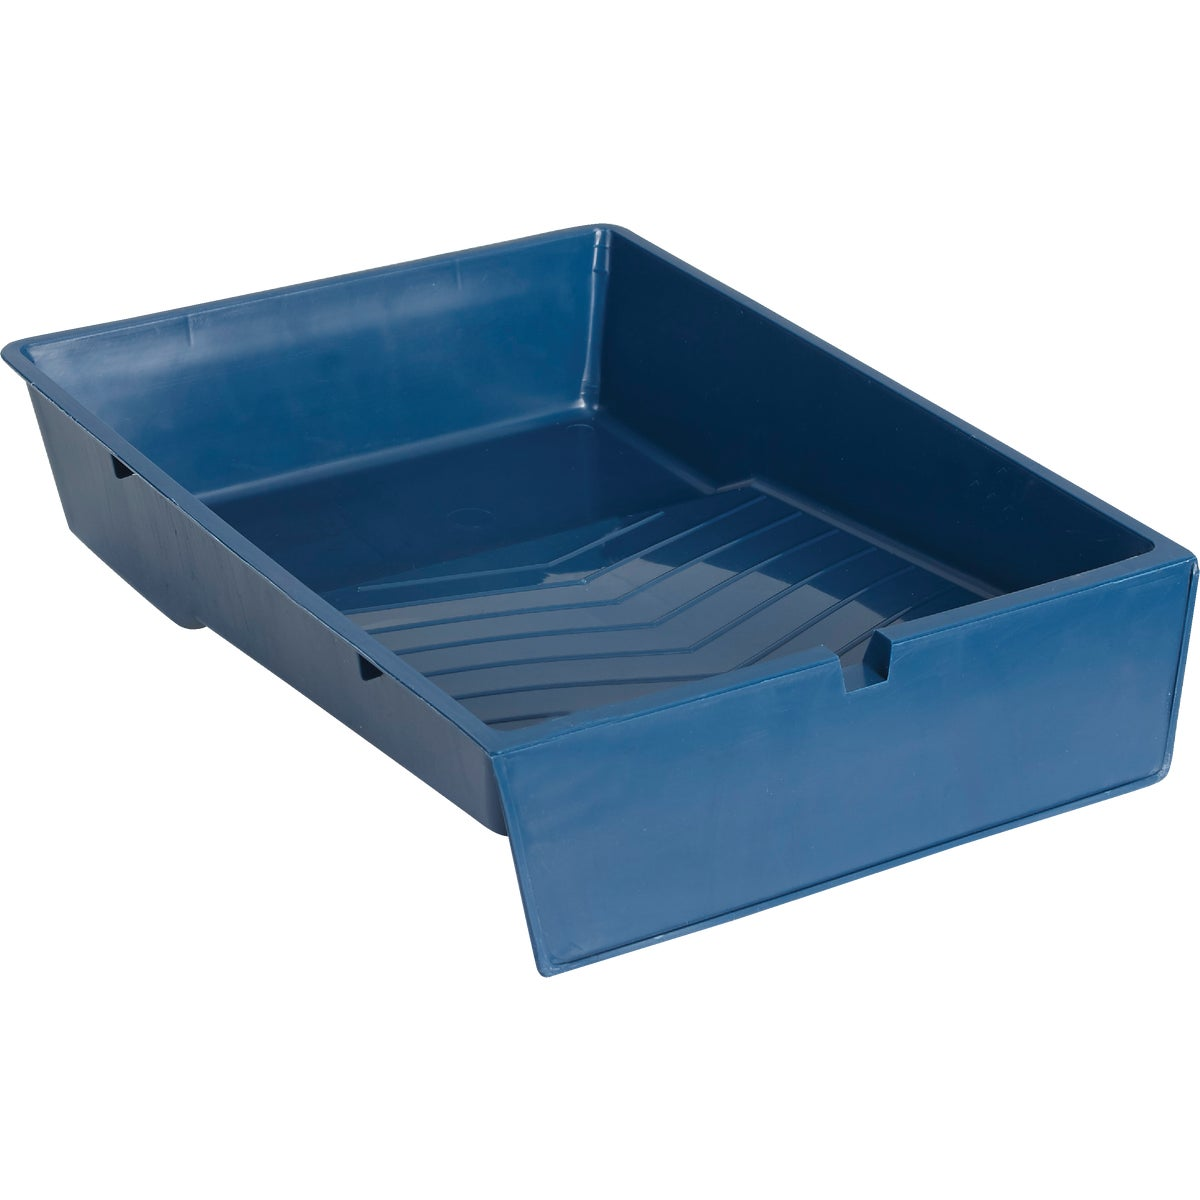 PLASTIC PAINT TRAY - 50095 by Shur Line